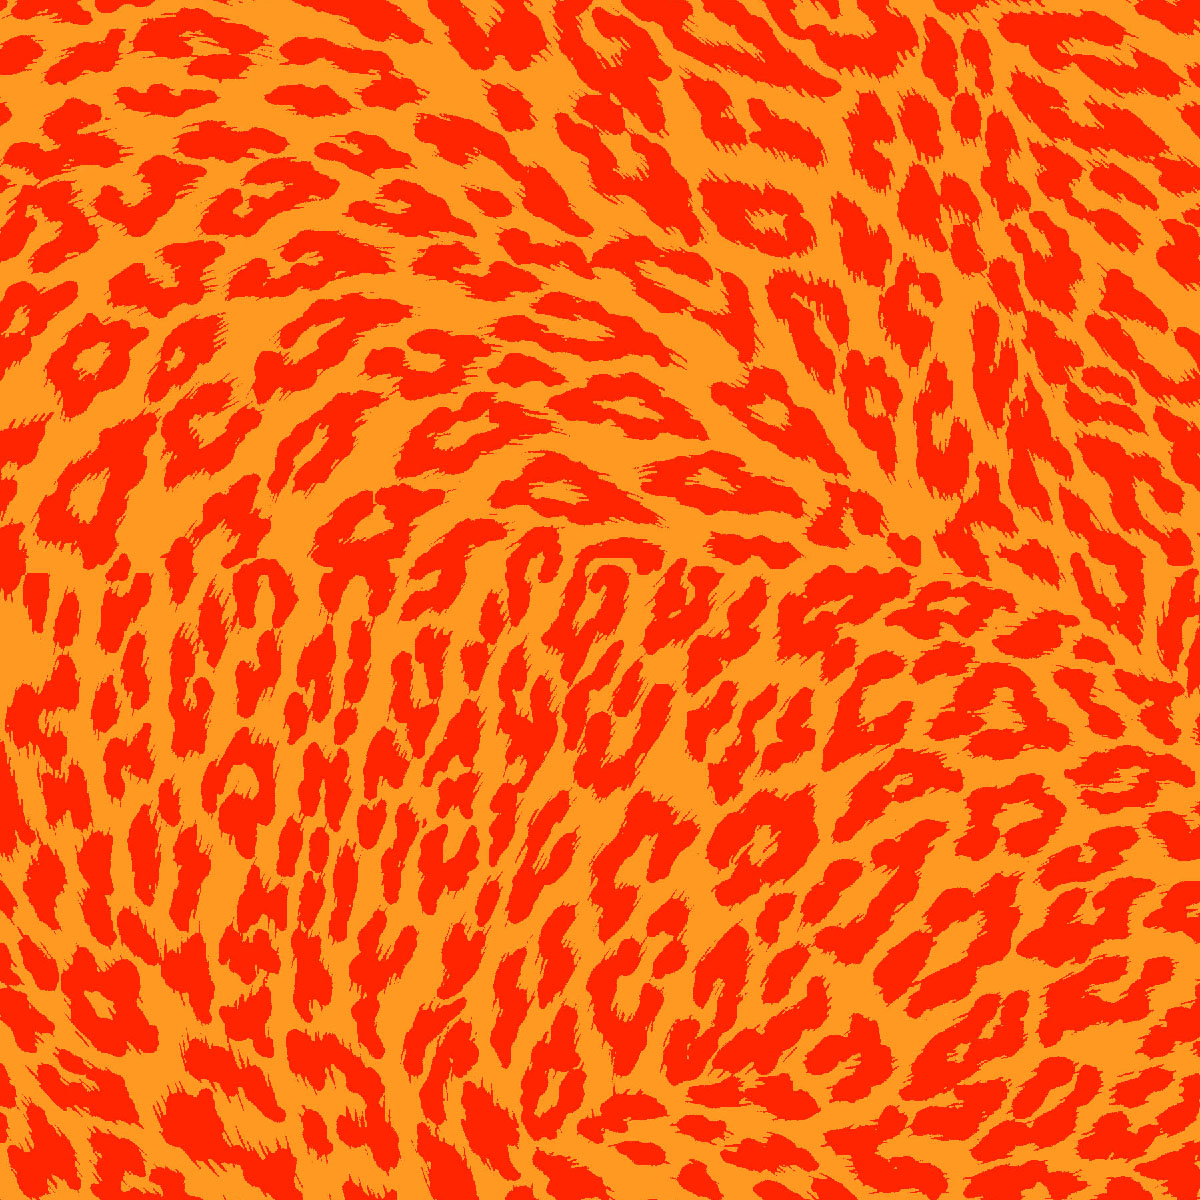 Exclusively Quilters Flip Flop Island 61231-7 Orange/Red Leopard Print - Orange